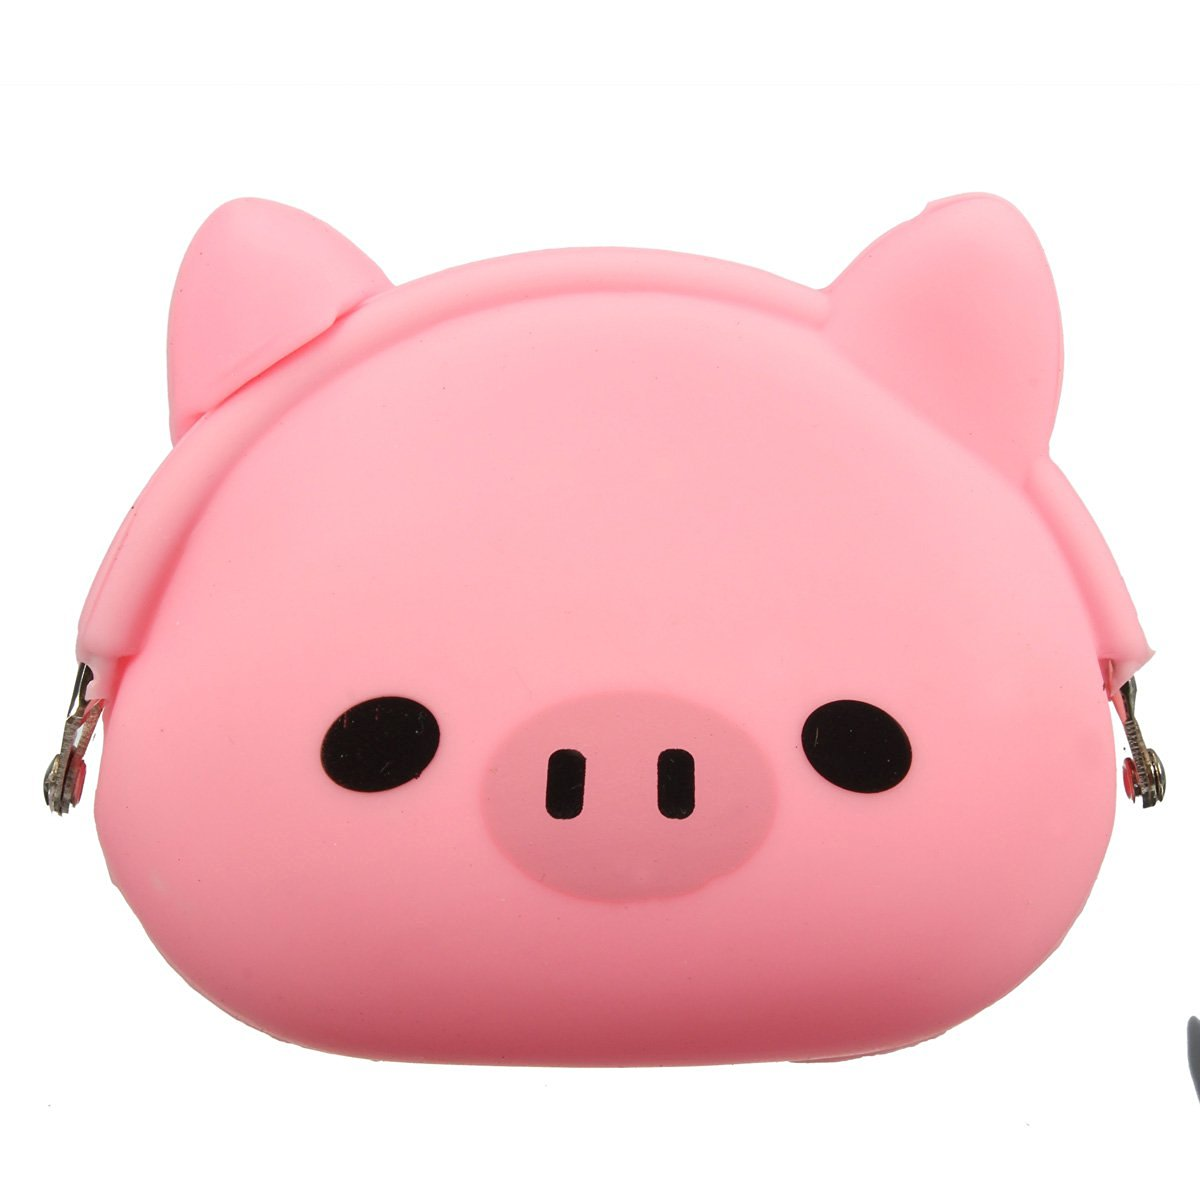 Women Girls Wallet Kawaii Cute Cartoon Animal Silicone Jelly coin purse Purse Kids Gift Pink Pig